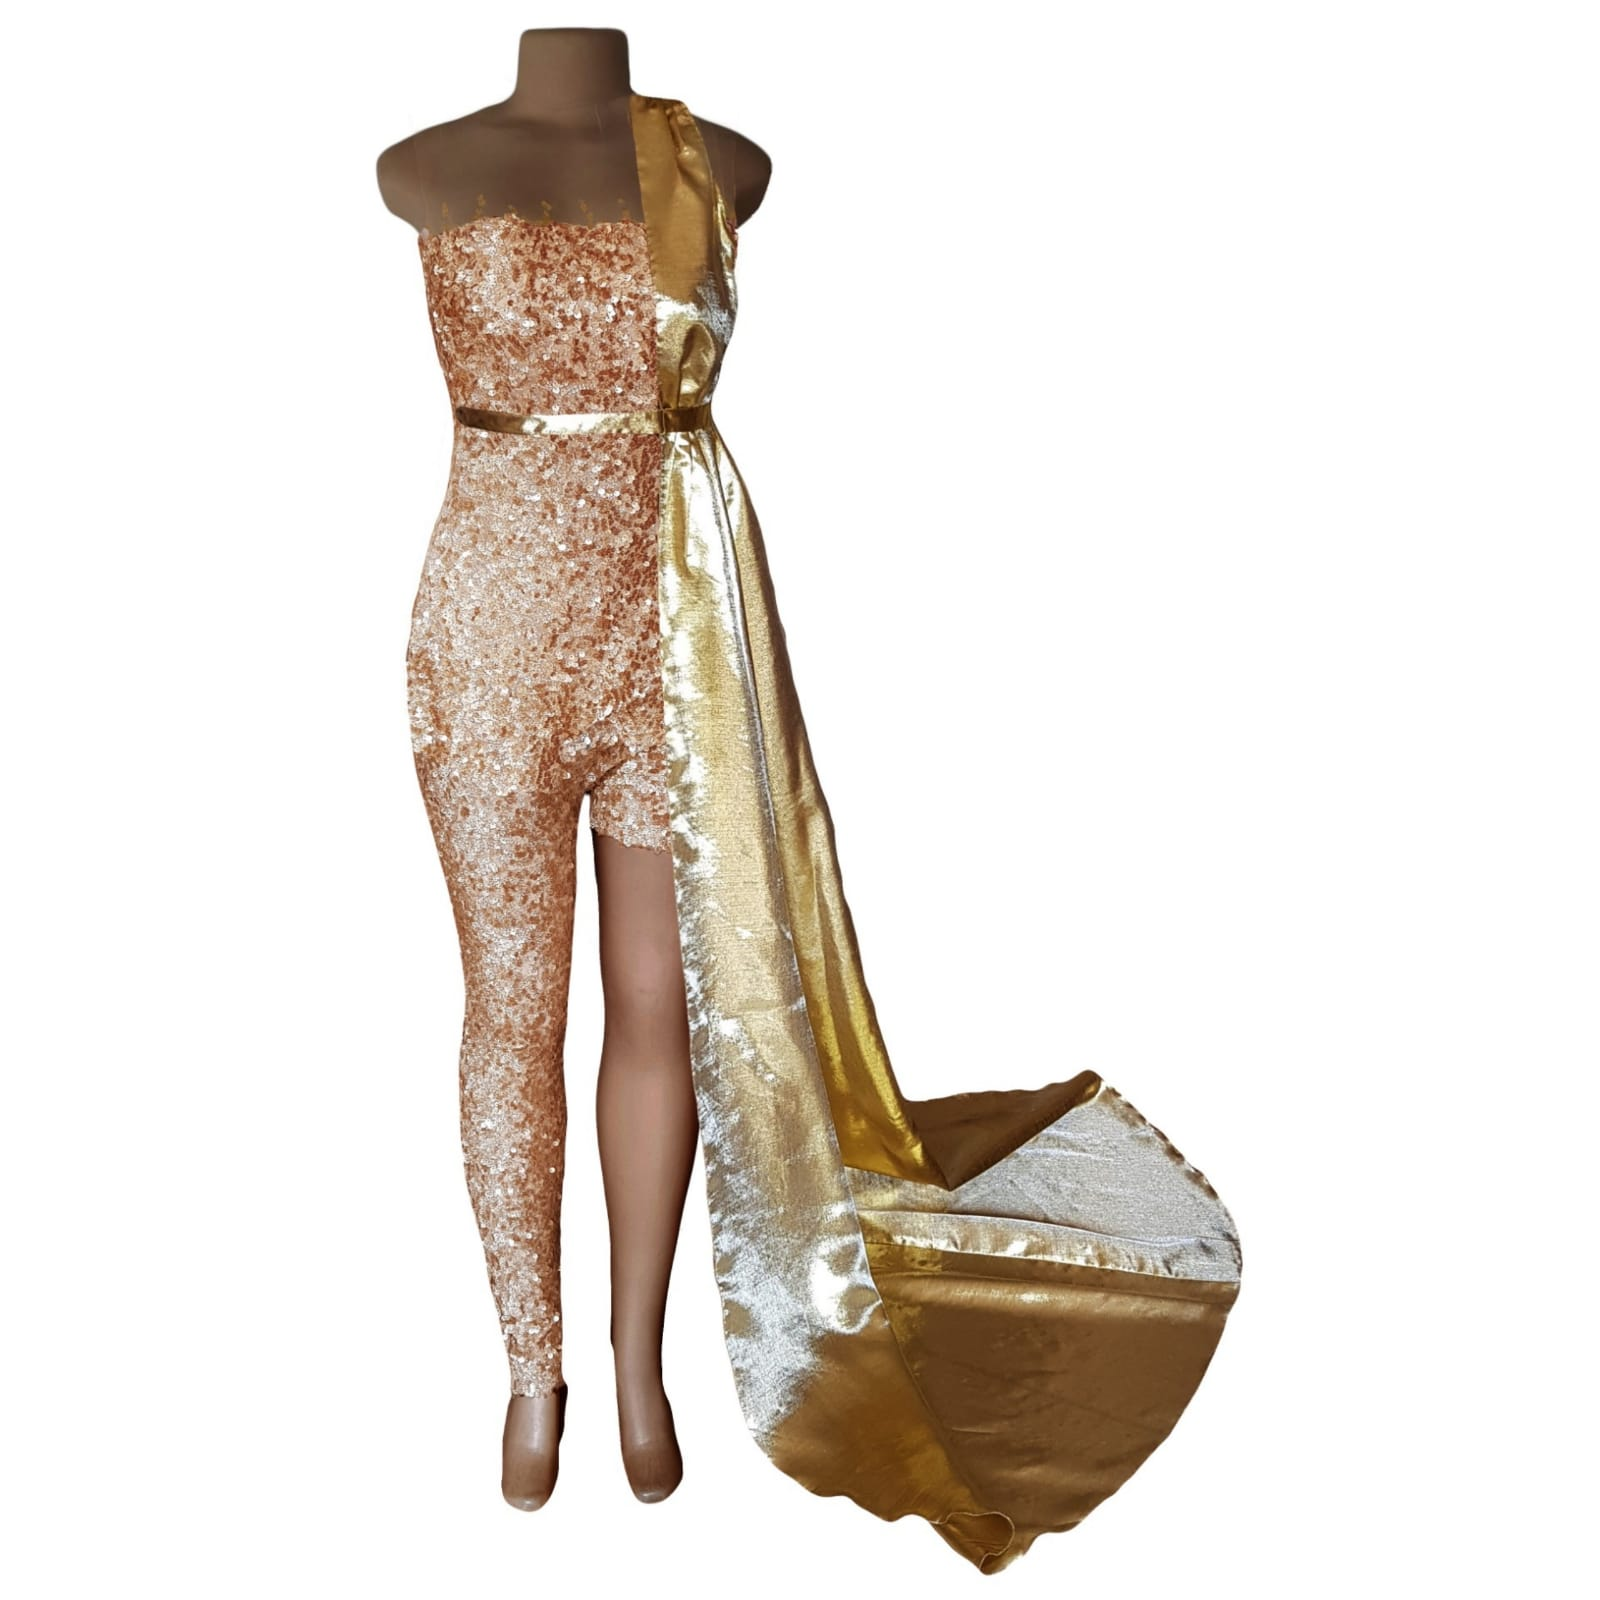 Gold sequins evening wear bodysuit 3 gold sequins evening wear bodysuit with an illusion neckline and sleeves, detailed with gold beads. With a long and short leg. Detachable side gold train.